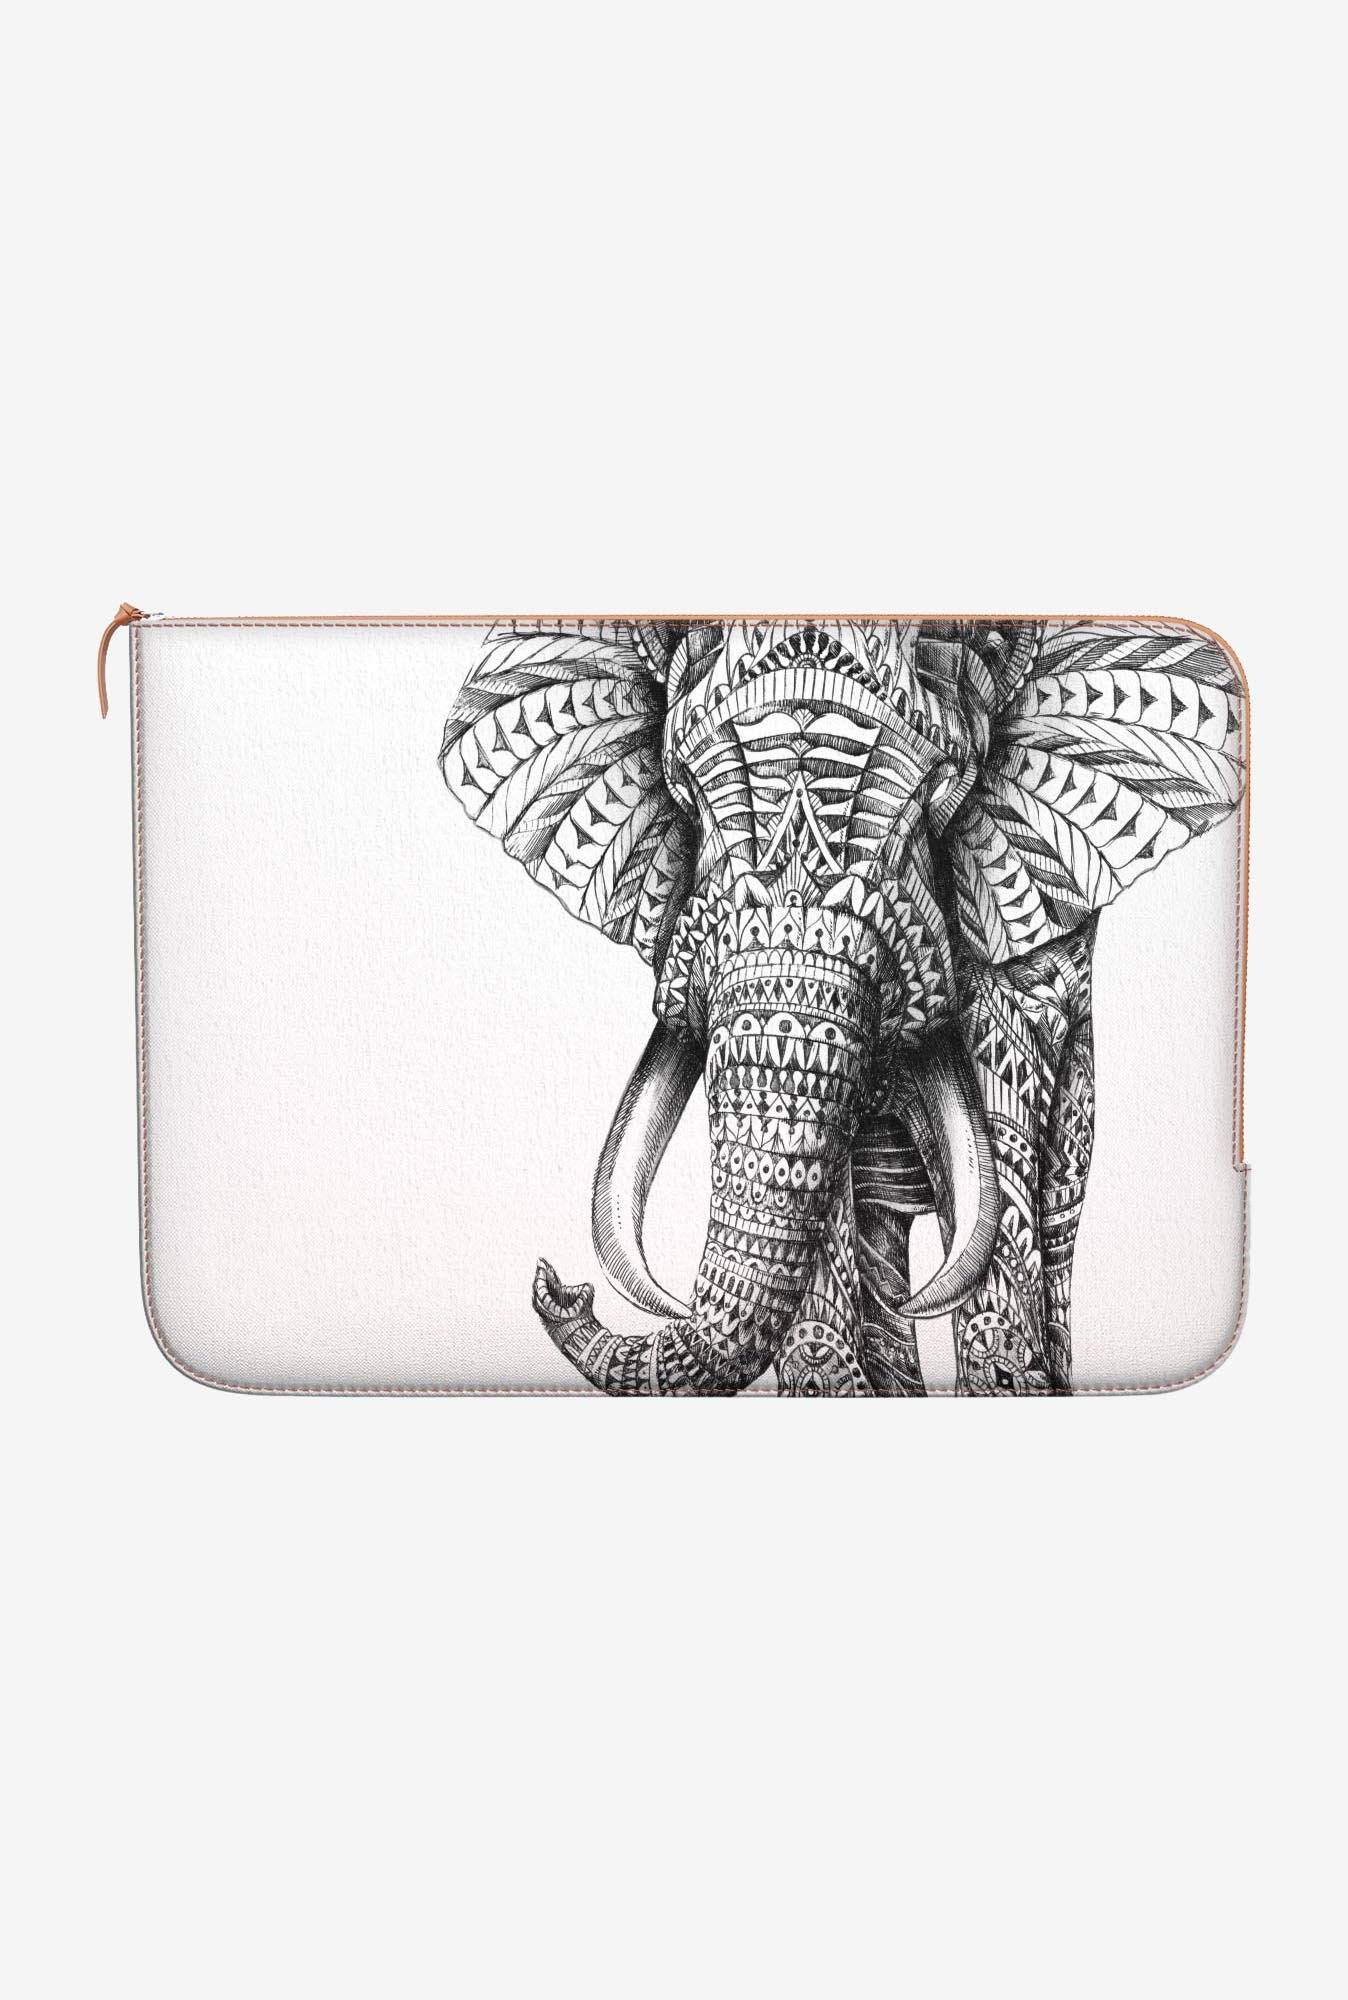 DailyObjects Ornate Elephant MacBook 12 Zippered Sleeve